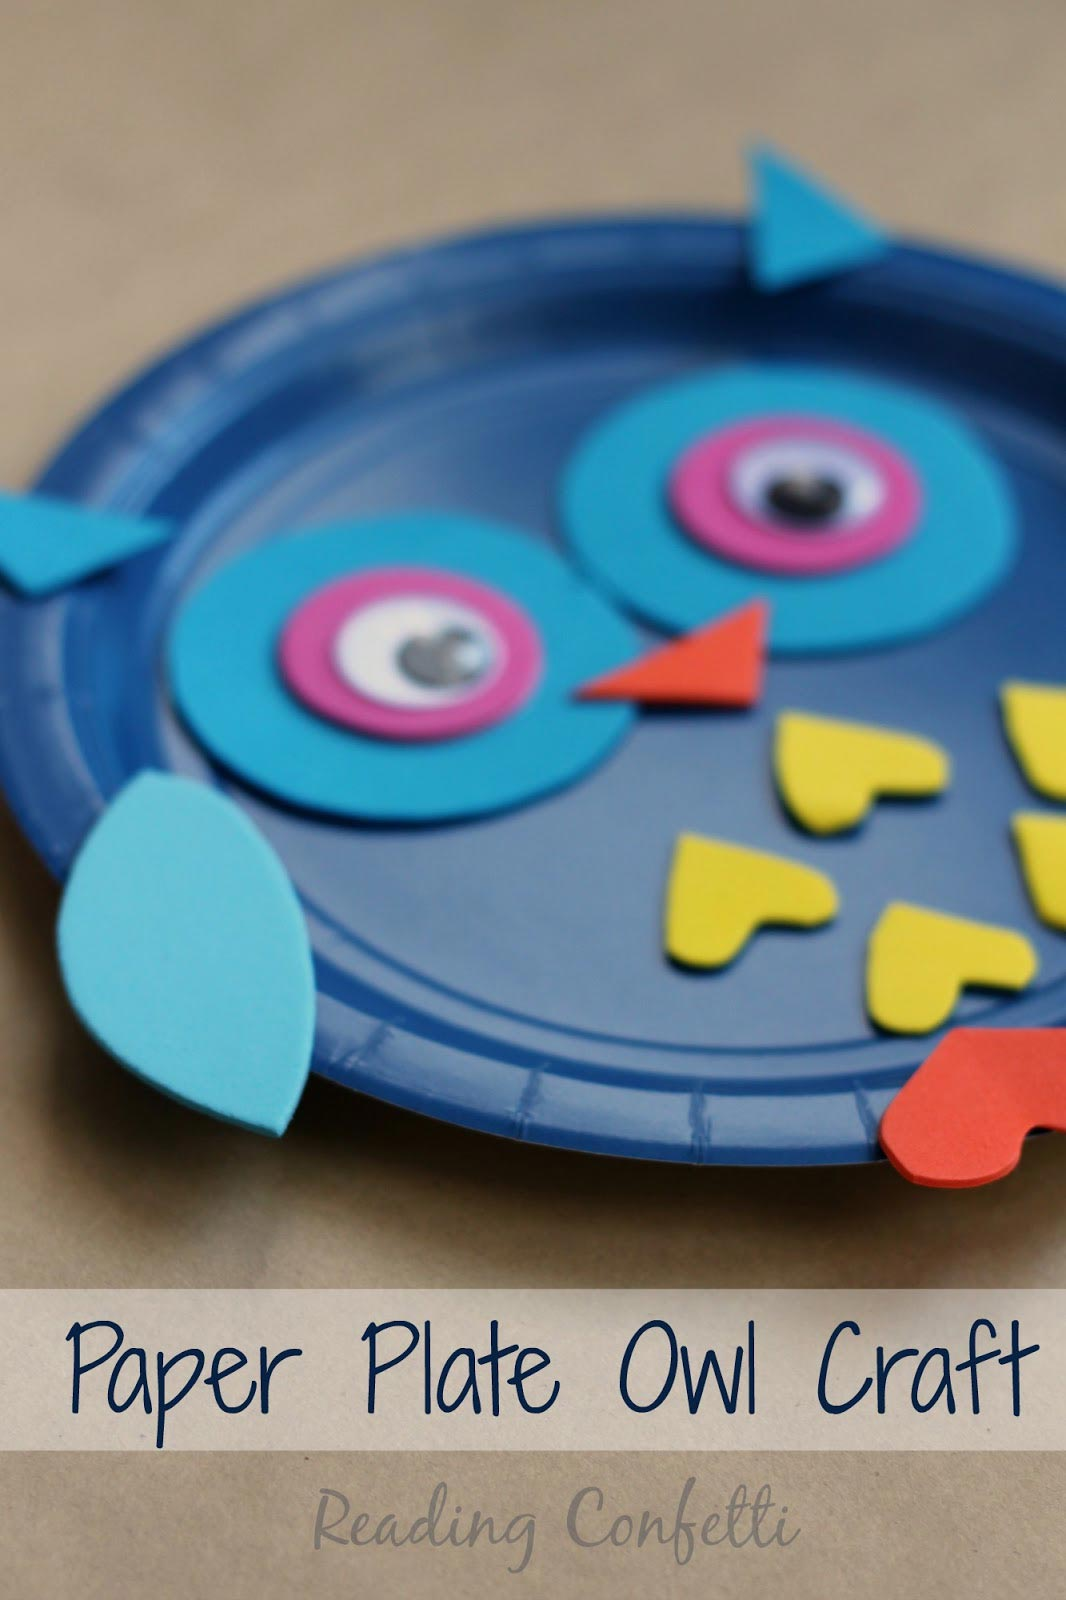 http://www.readingconfetti.com/2015/03/paper-plate-owl-craft.html